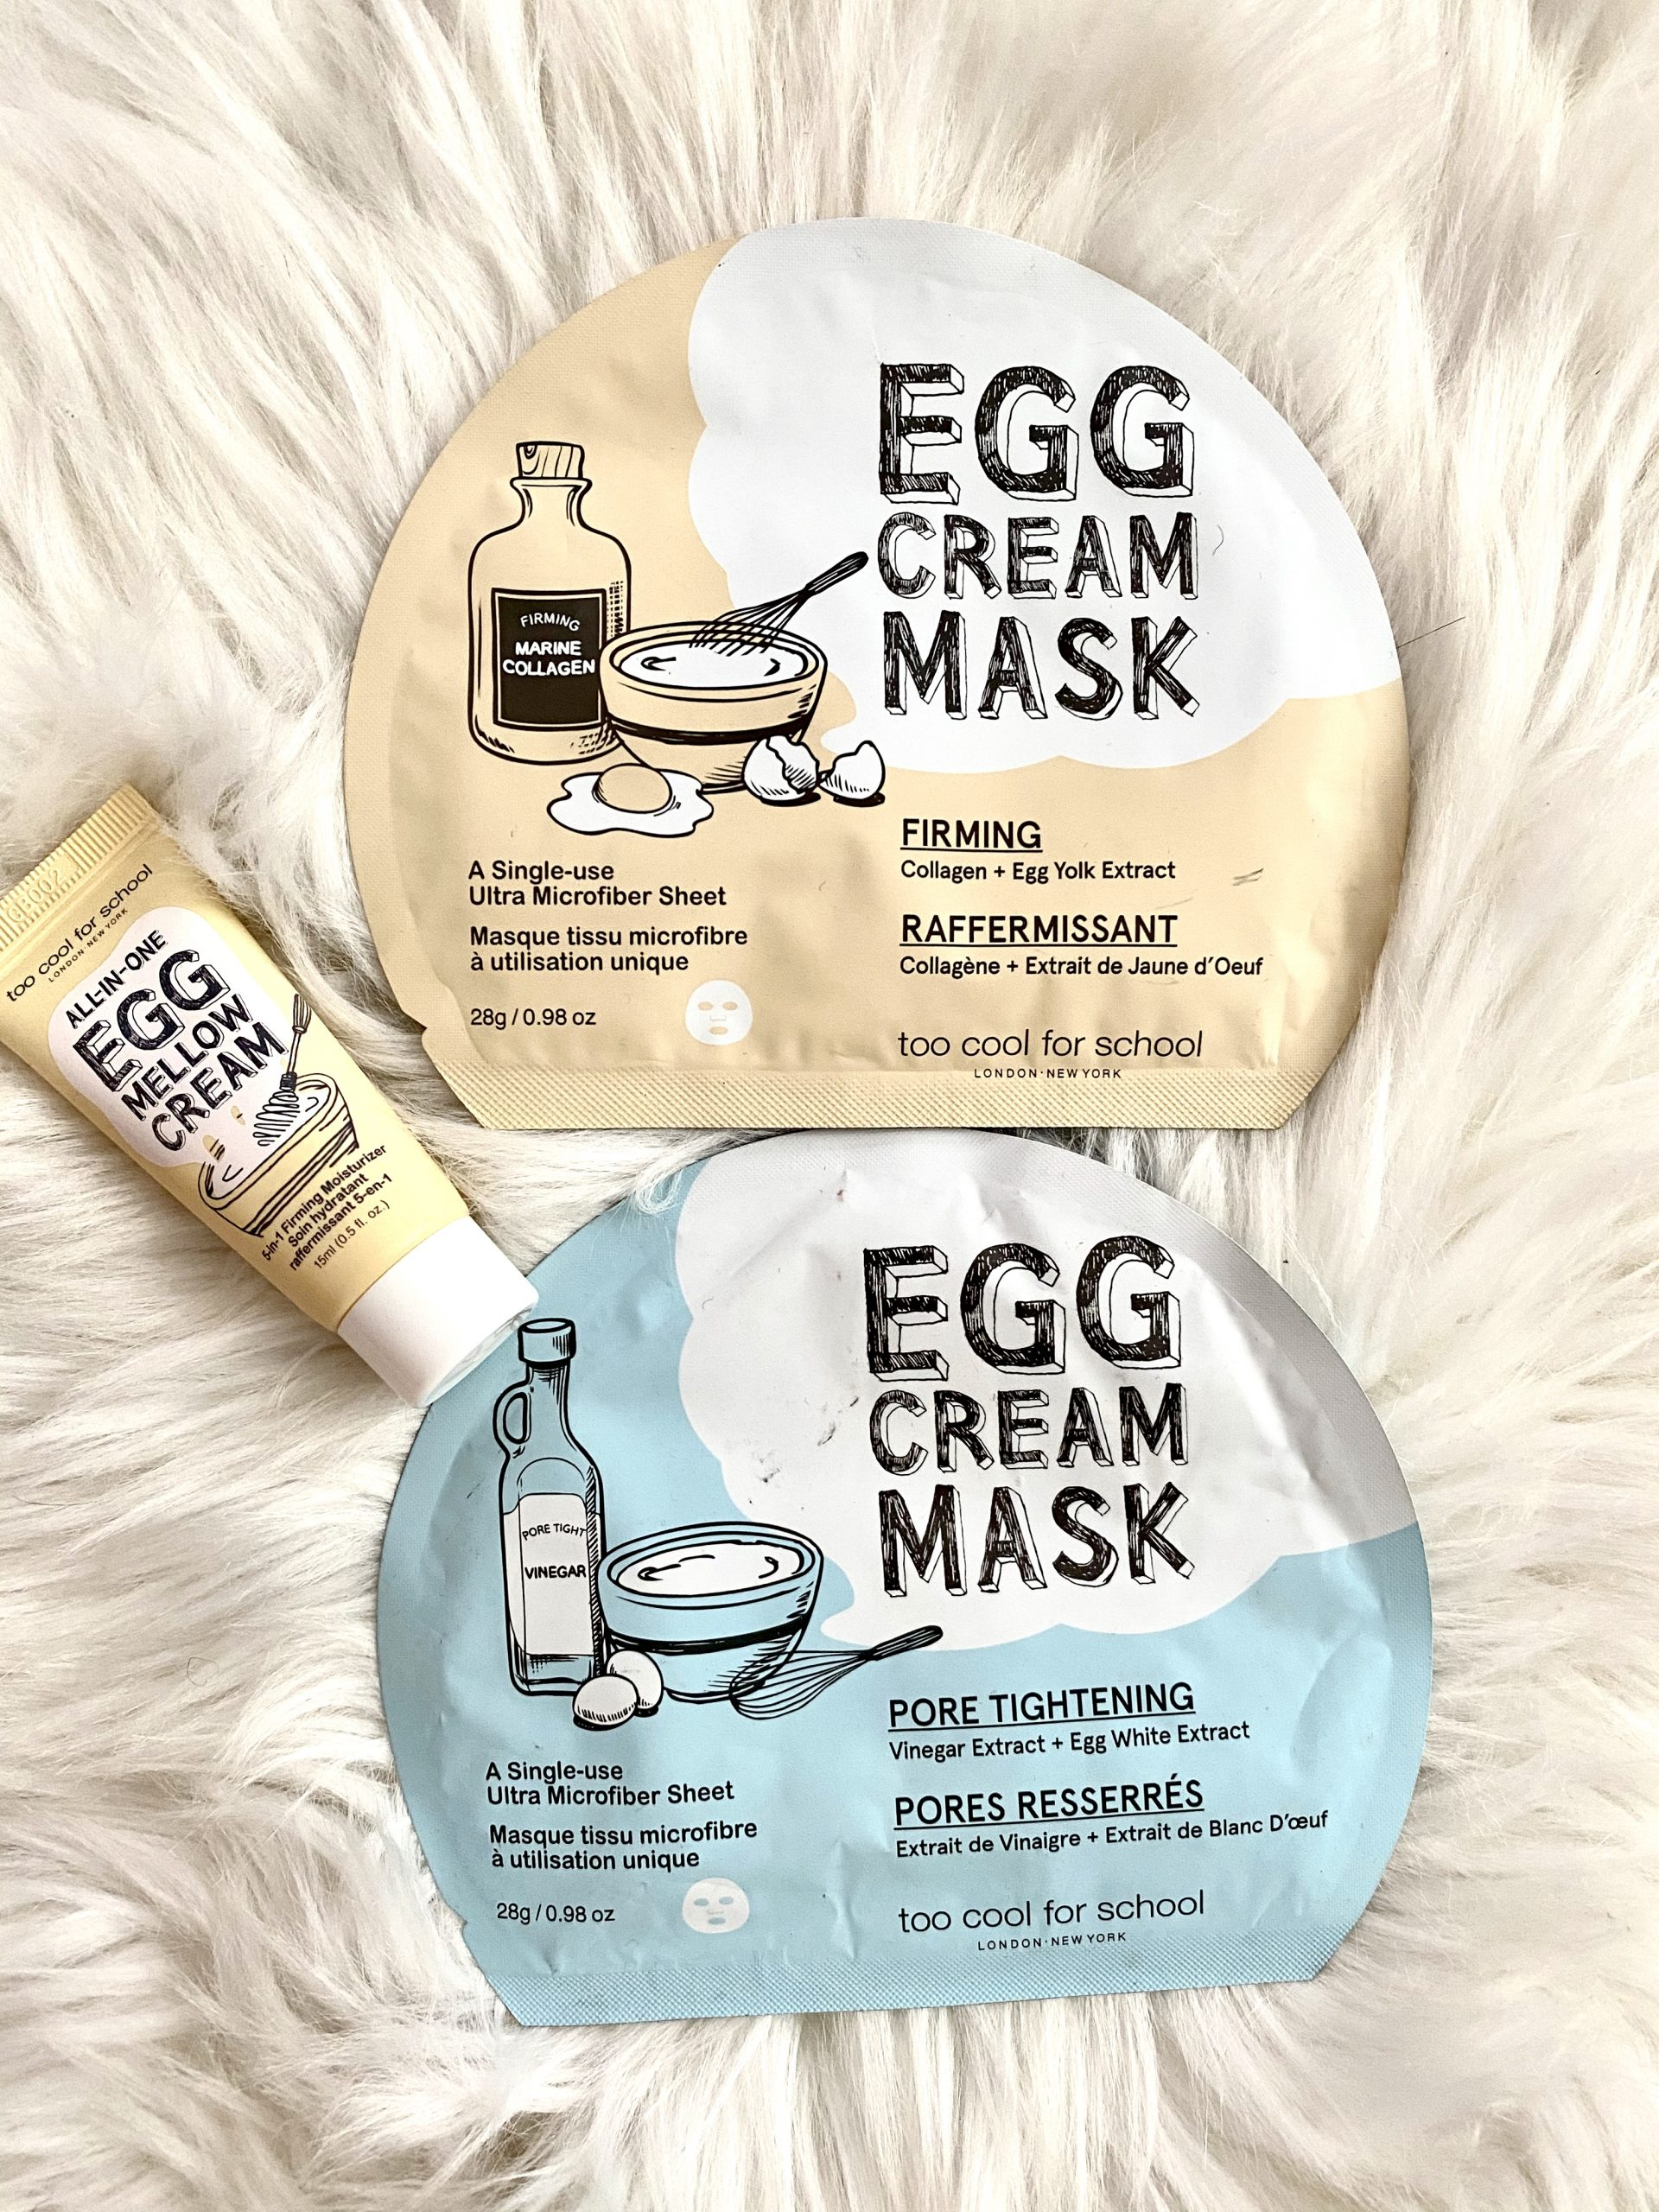 Too Cool For School Skincare Product Review   ERA en Vogue